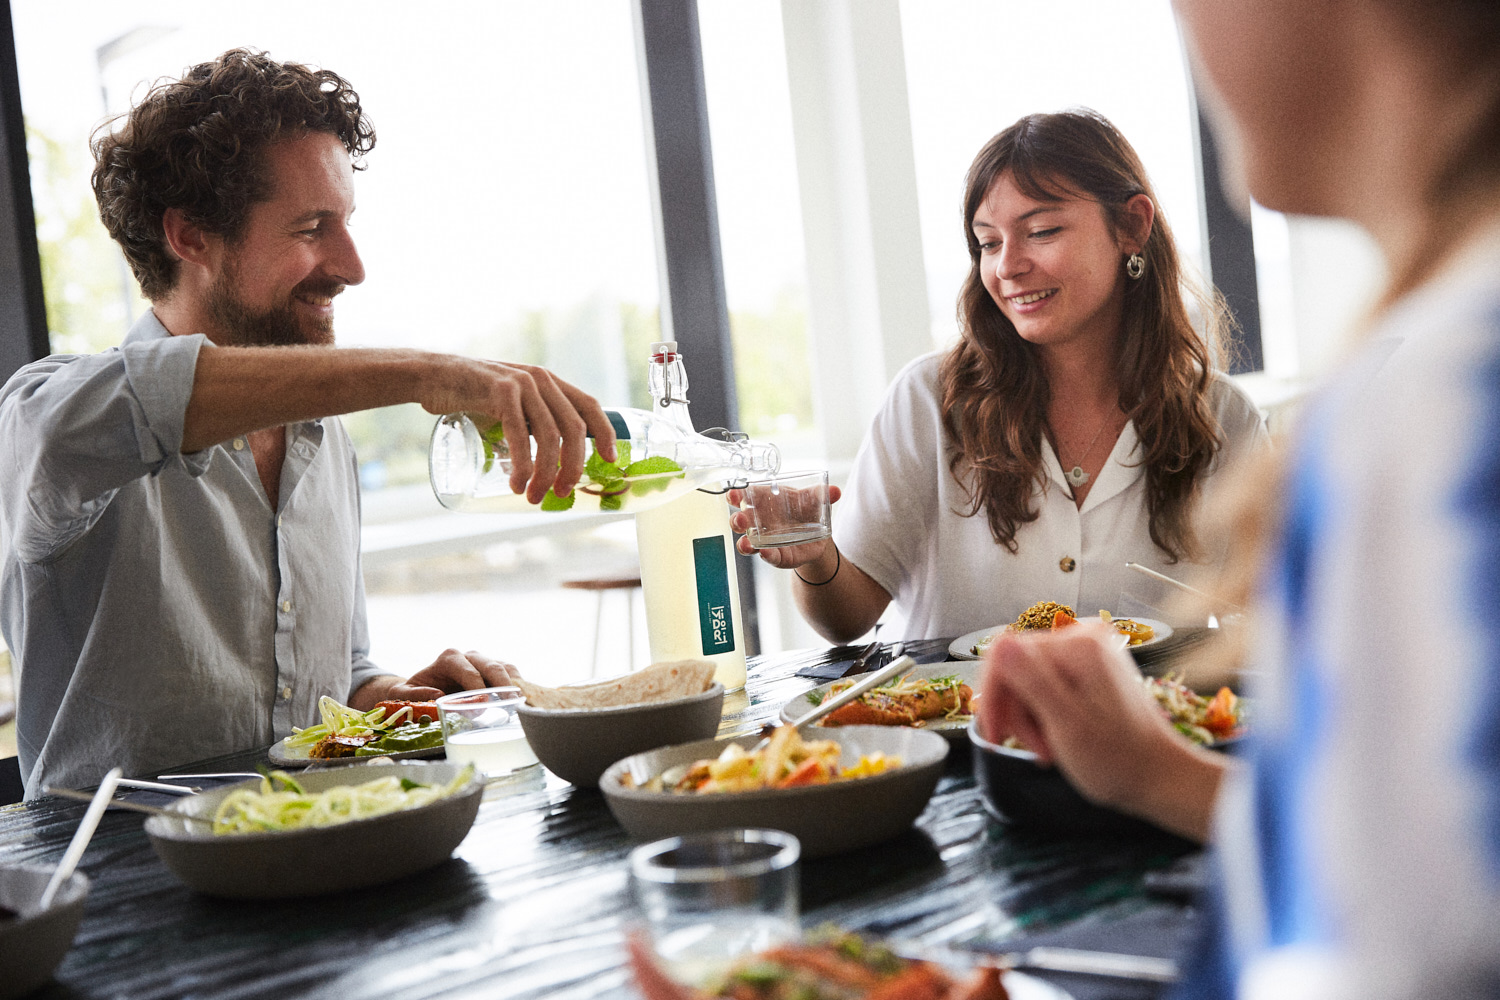 A picture of people sharing food